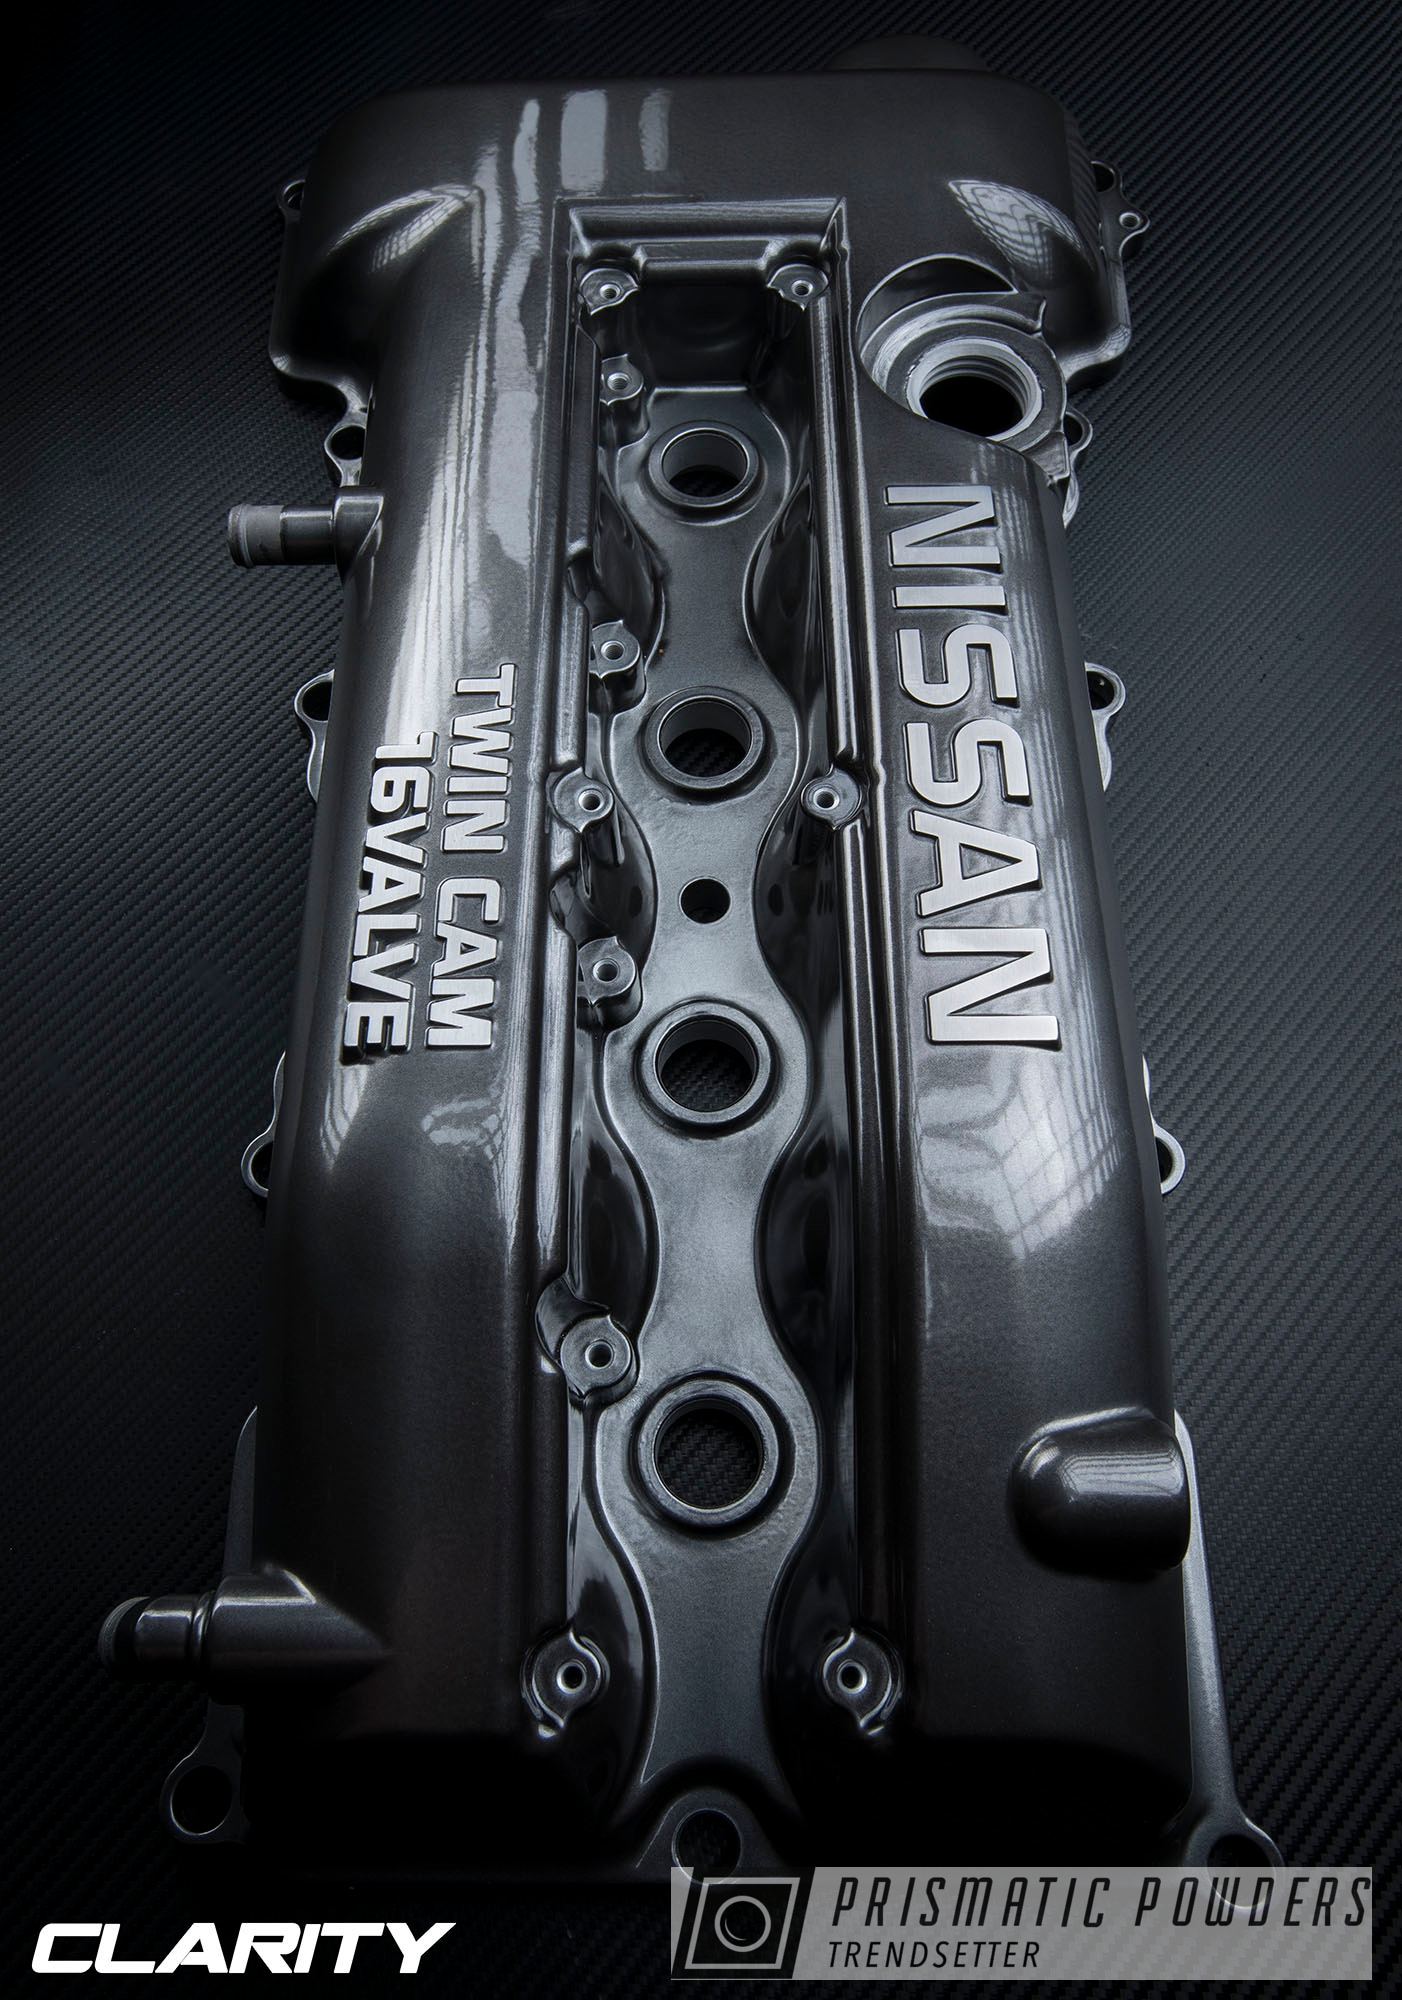 Powder Coating: Black Chrome II PPB-4623,Automotive,Nissan,Super Chrome USS-4482,blackchrome,Valve Cover